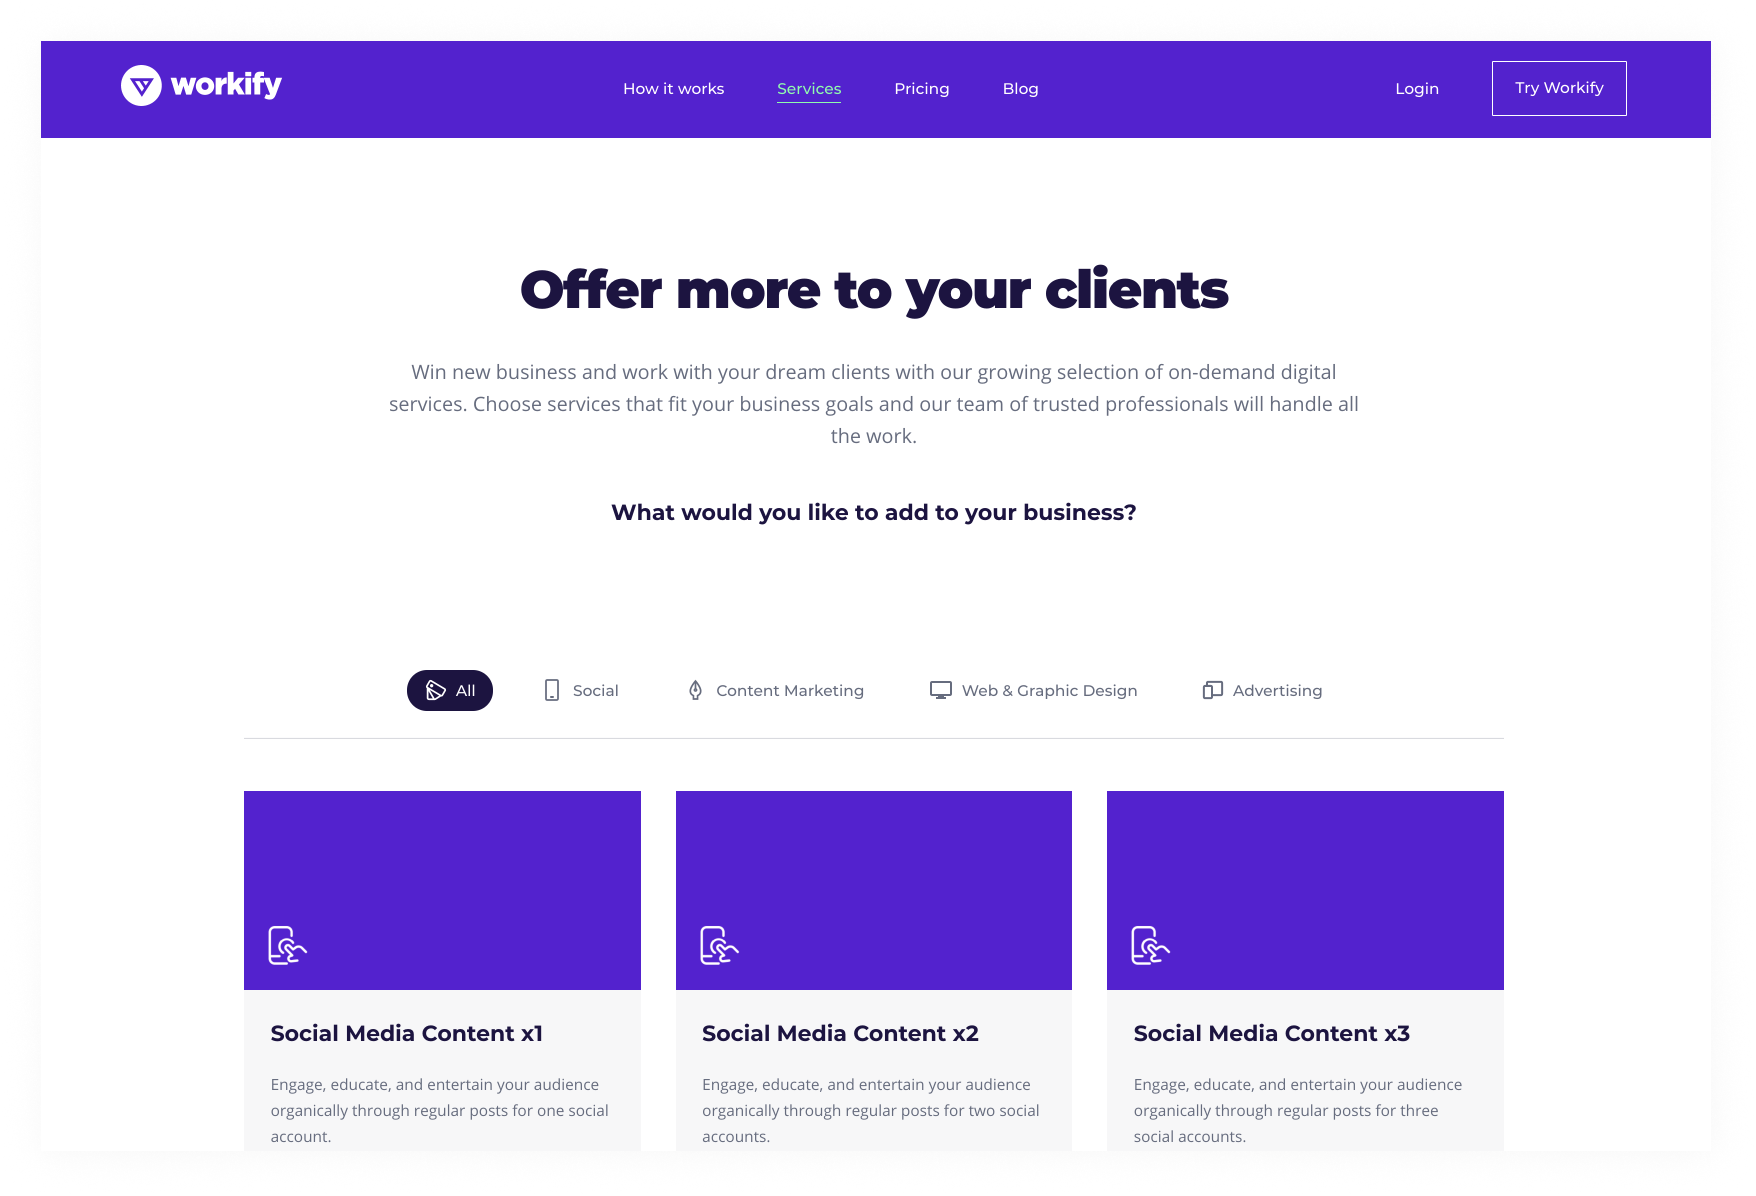 Workify Services 2